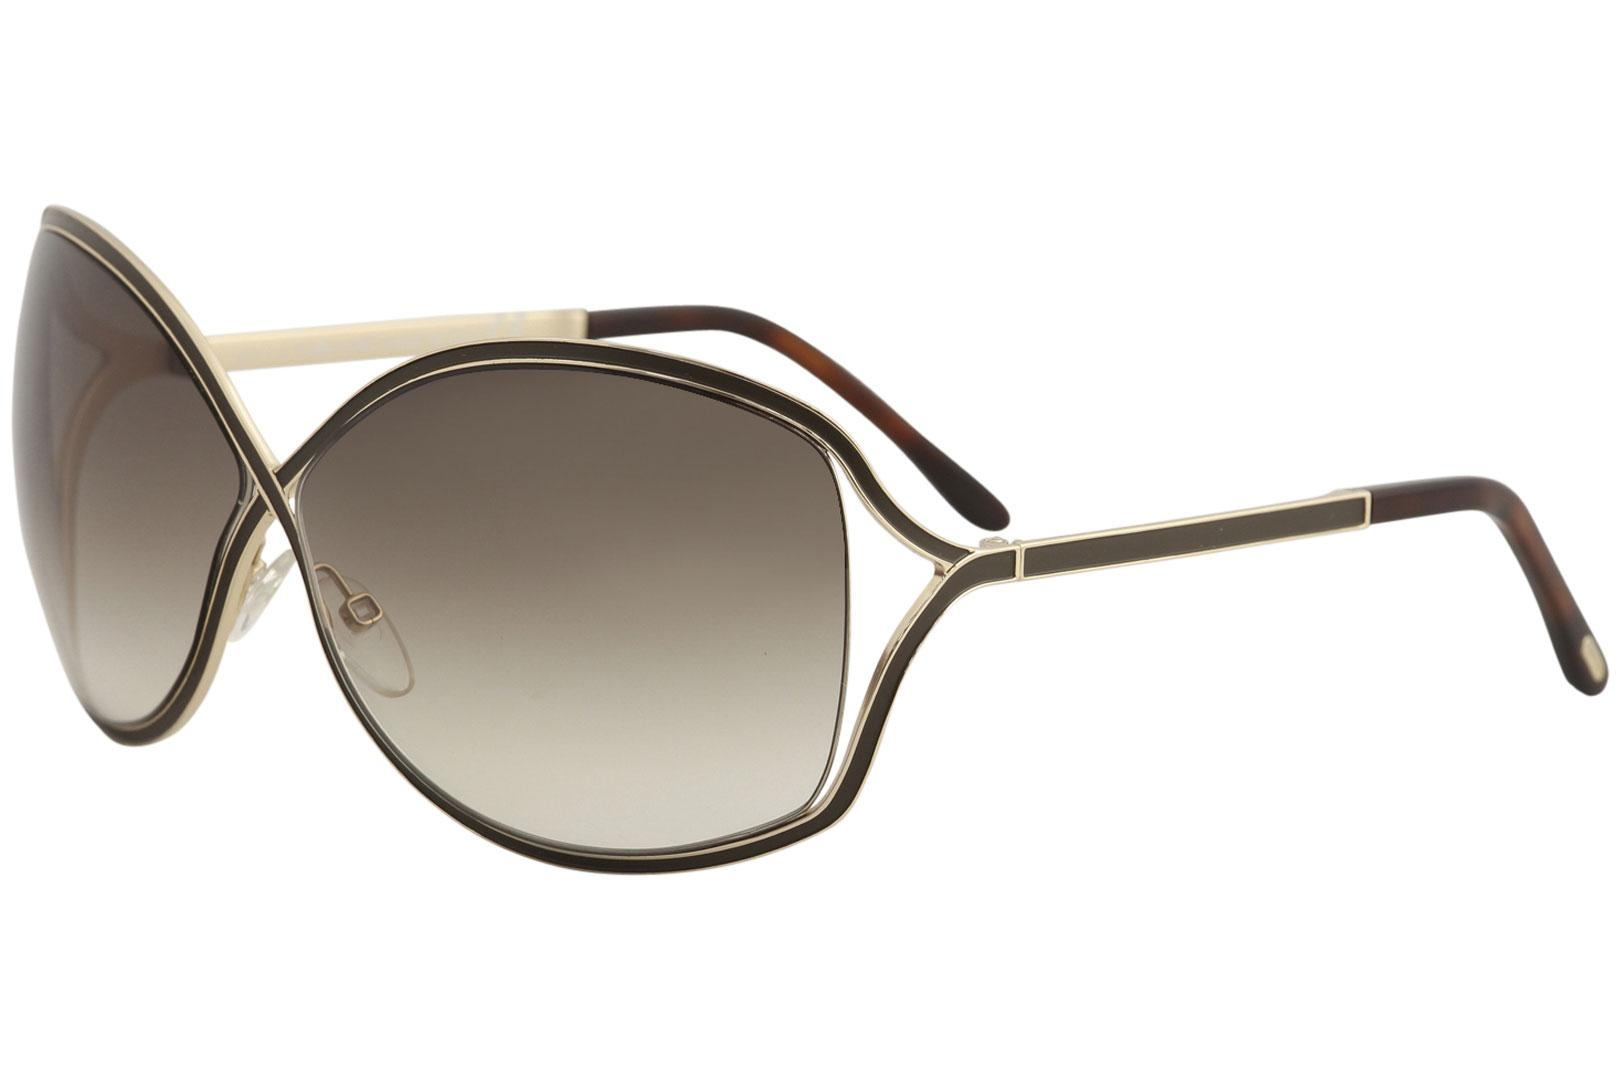 bc8d1f56709c0 Tom Ford Rickie TF179 Sunglasses TF 179 Brown Gold 48F Shades by Tom Ford